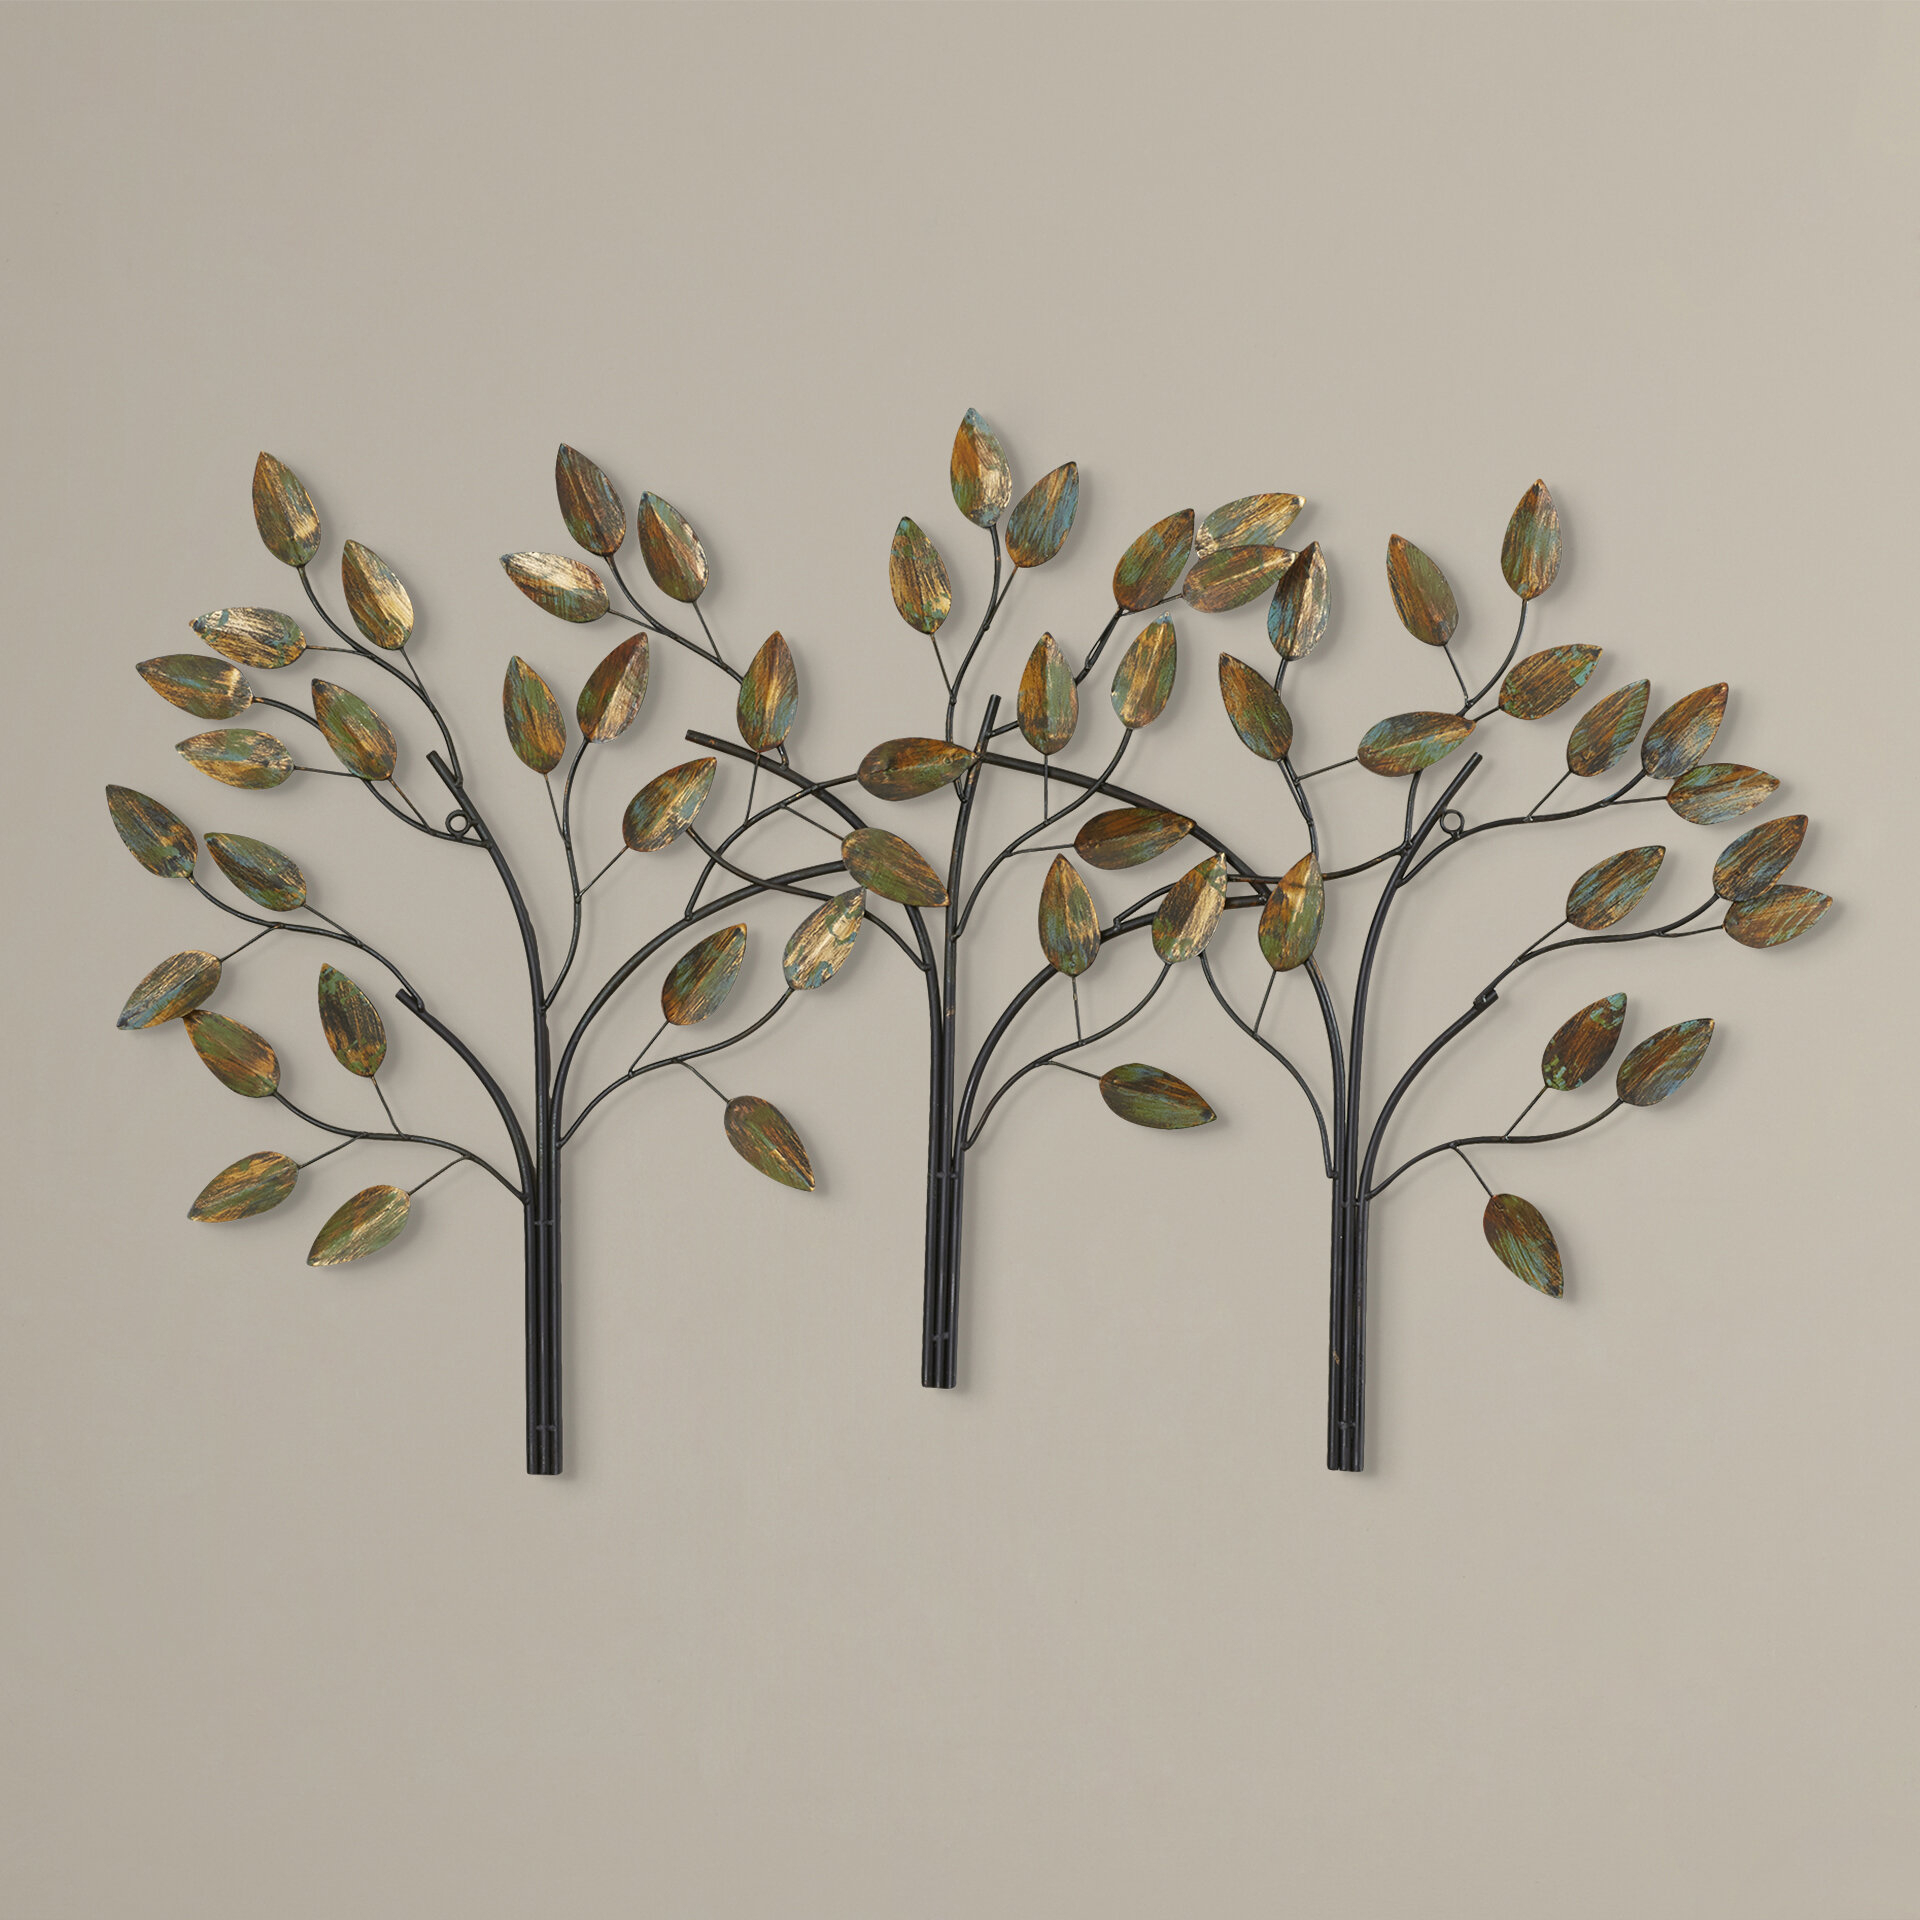 Desford Leaf Wall Décor Within Current Blended Fabric Leaf Wall Hangings (View 15 of 20)